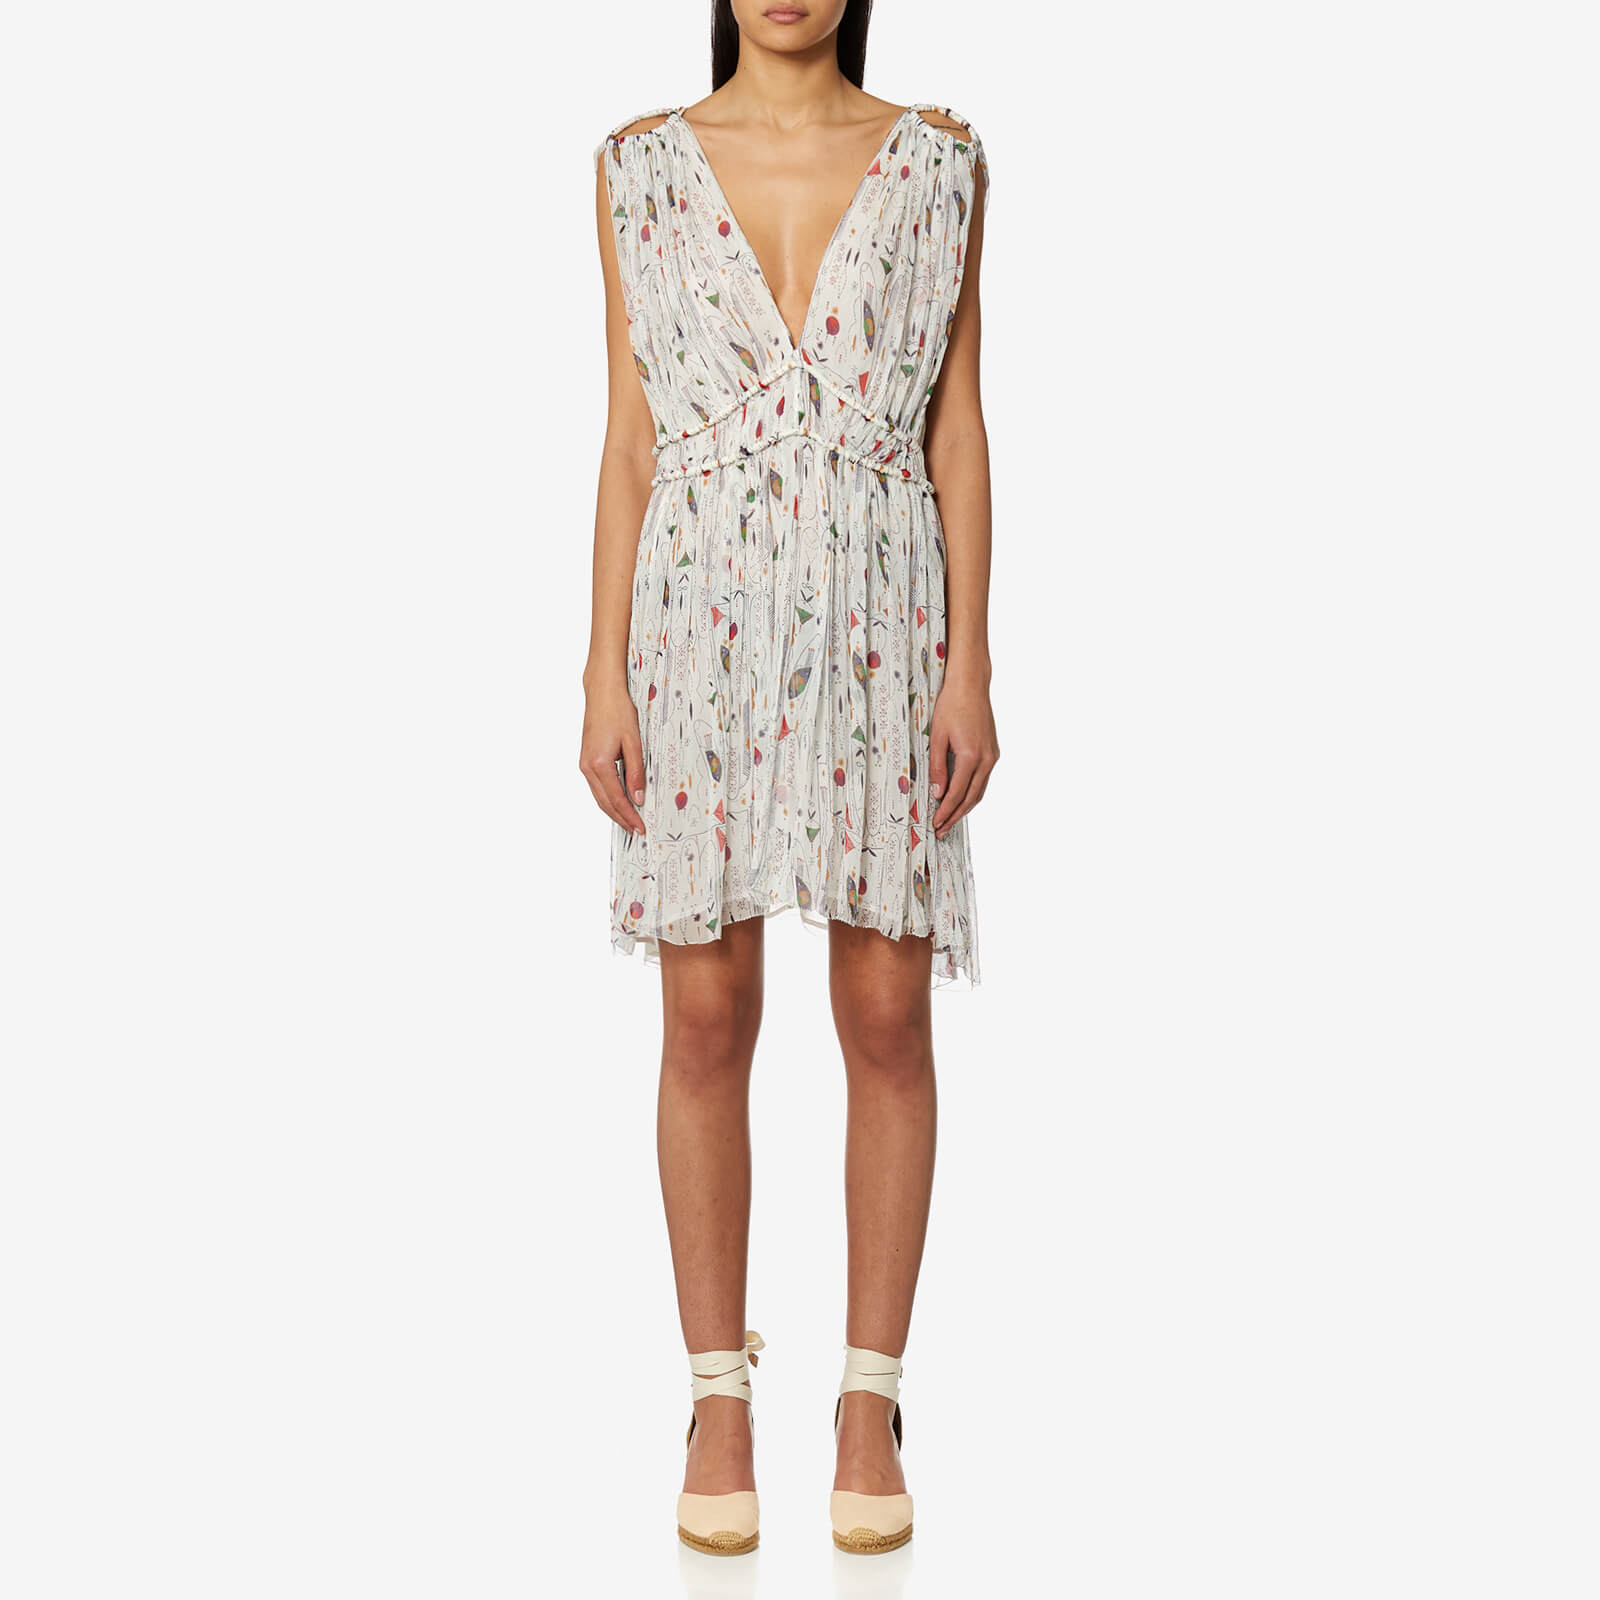 049b1cb754d Isabel Marant Etoile Women s Estelle Printed Chiffon Silk Short Dress -  Ecru - Free UK Delivery over £50